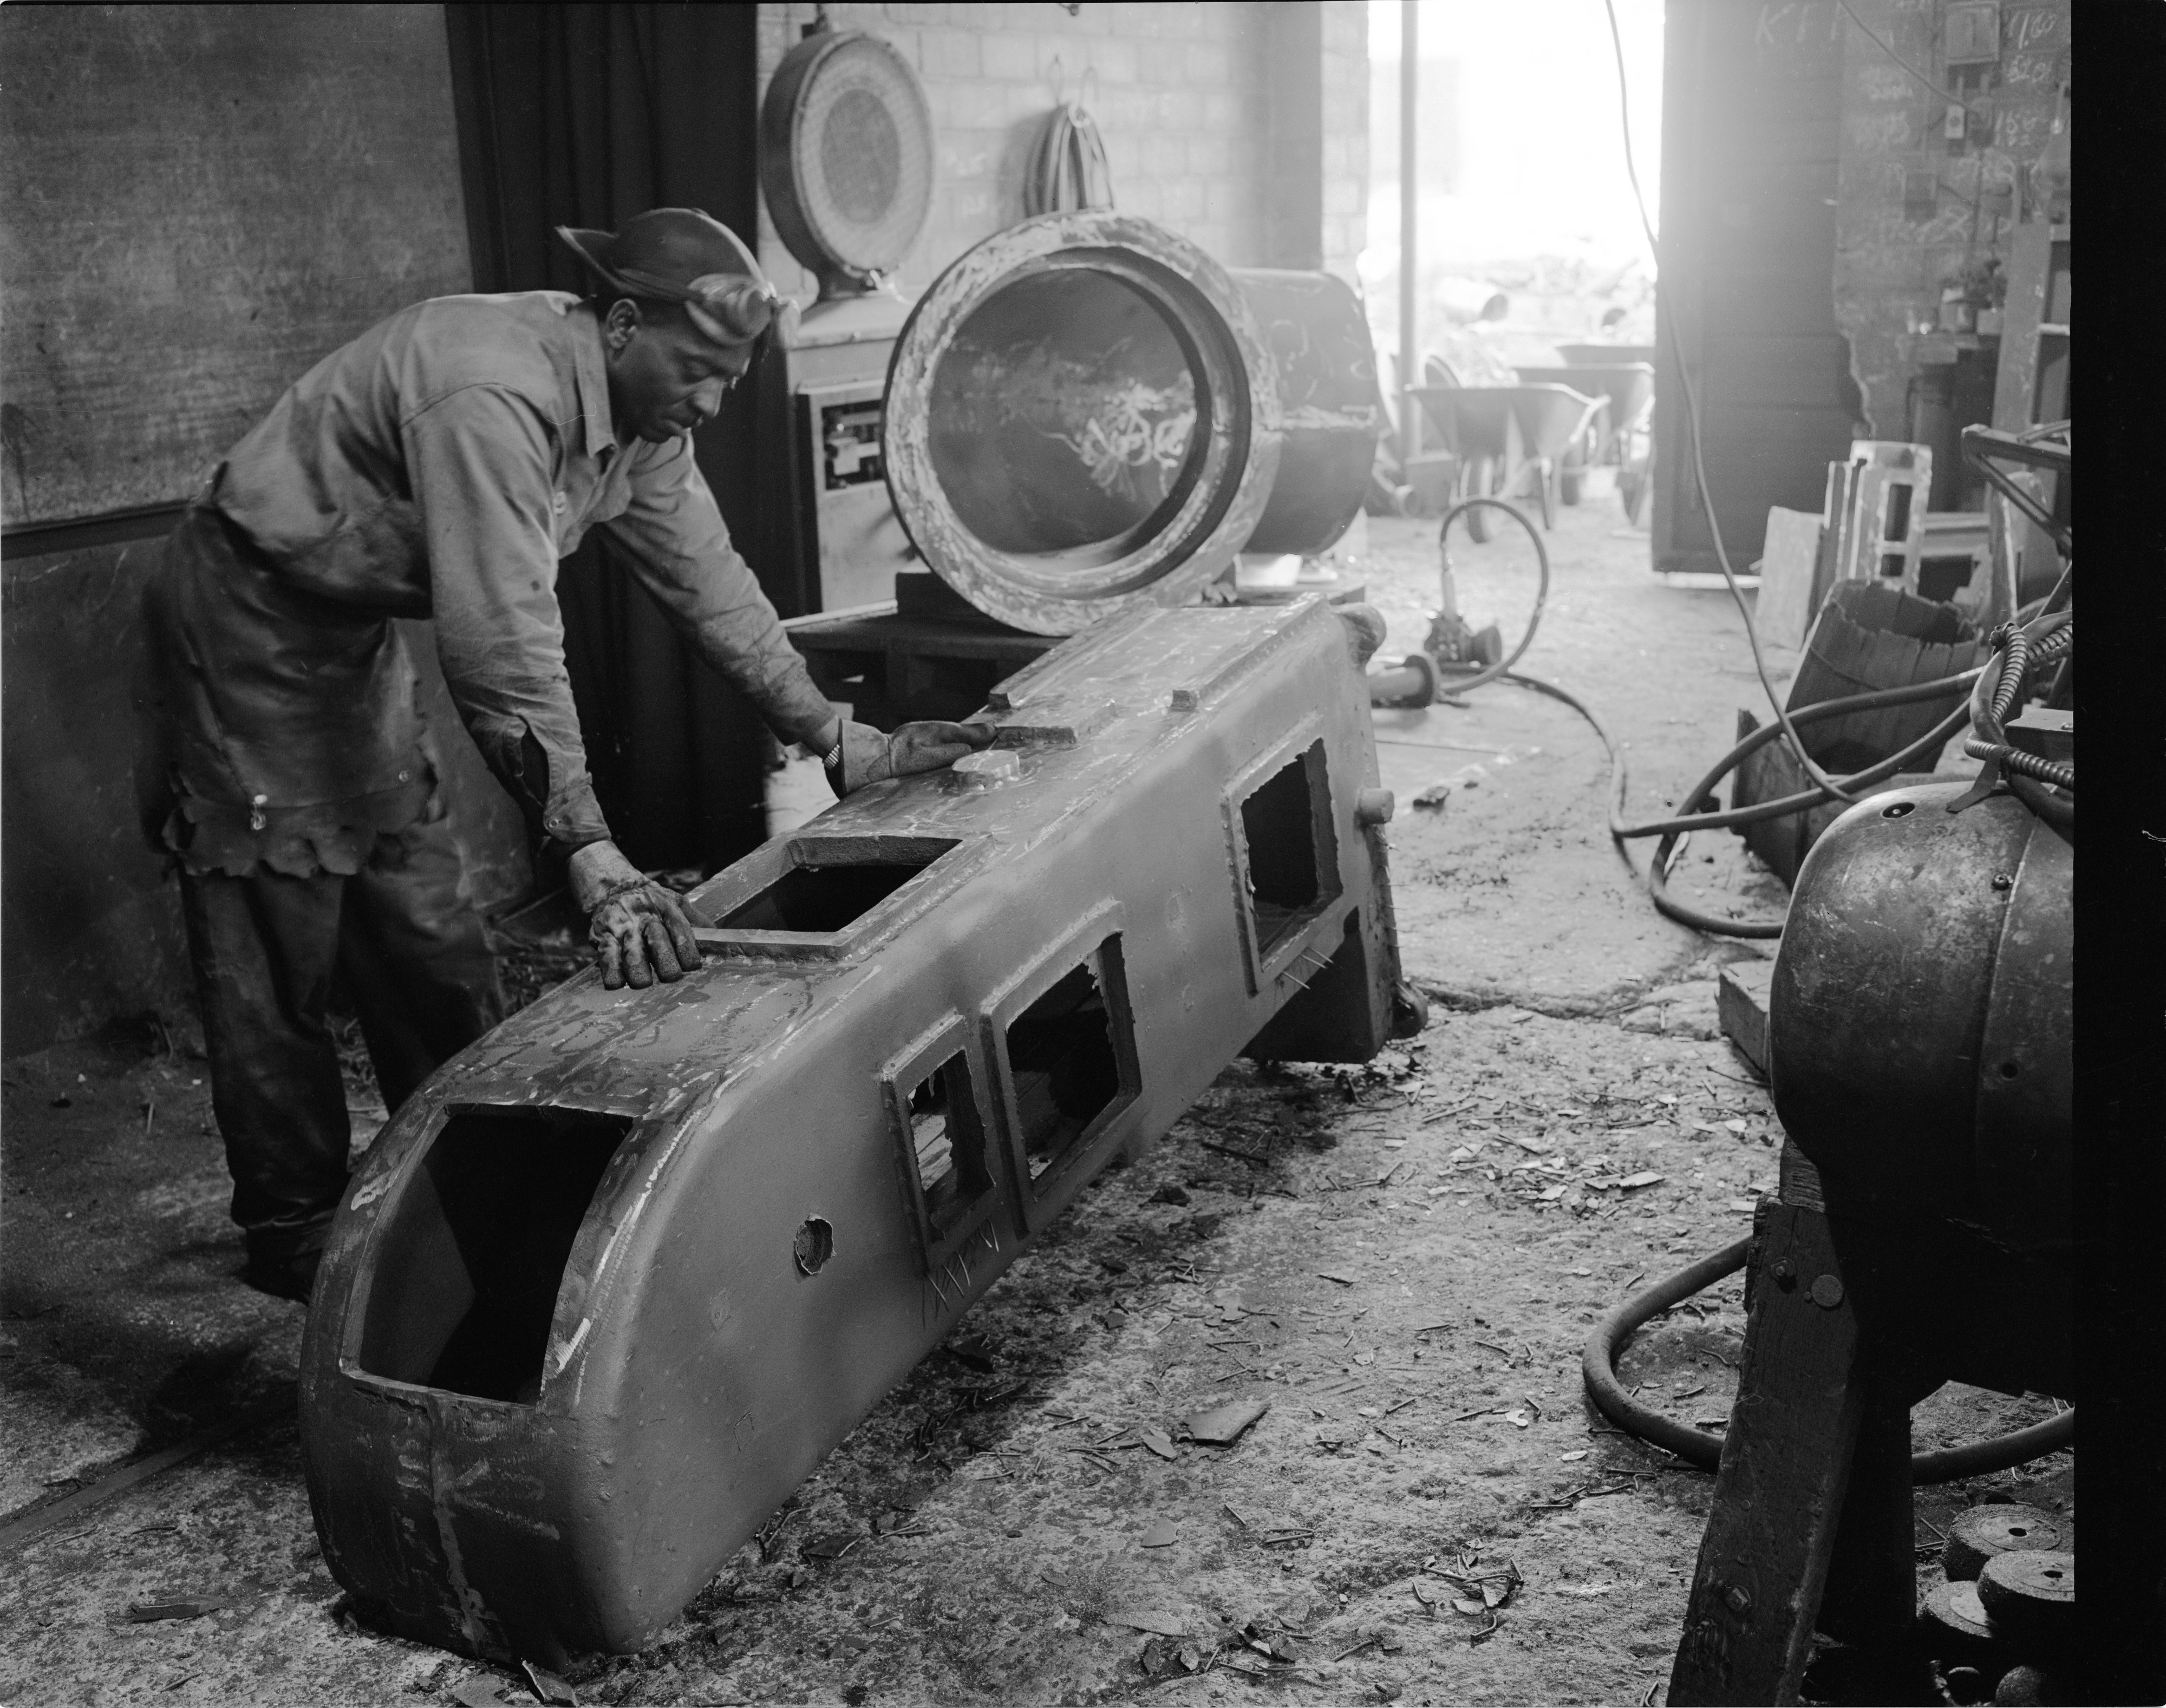 Dave Drumright Inspects Machinery At The Ann Arbor Foundry, February 1954 image